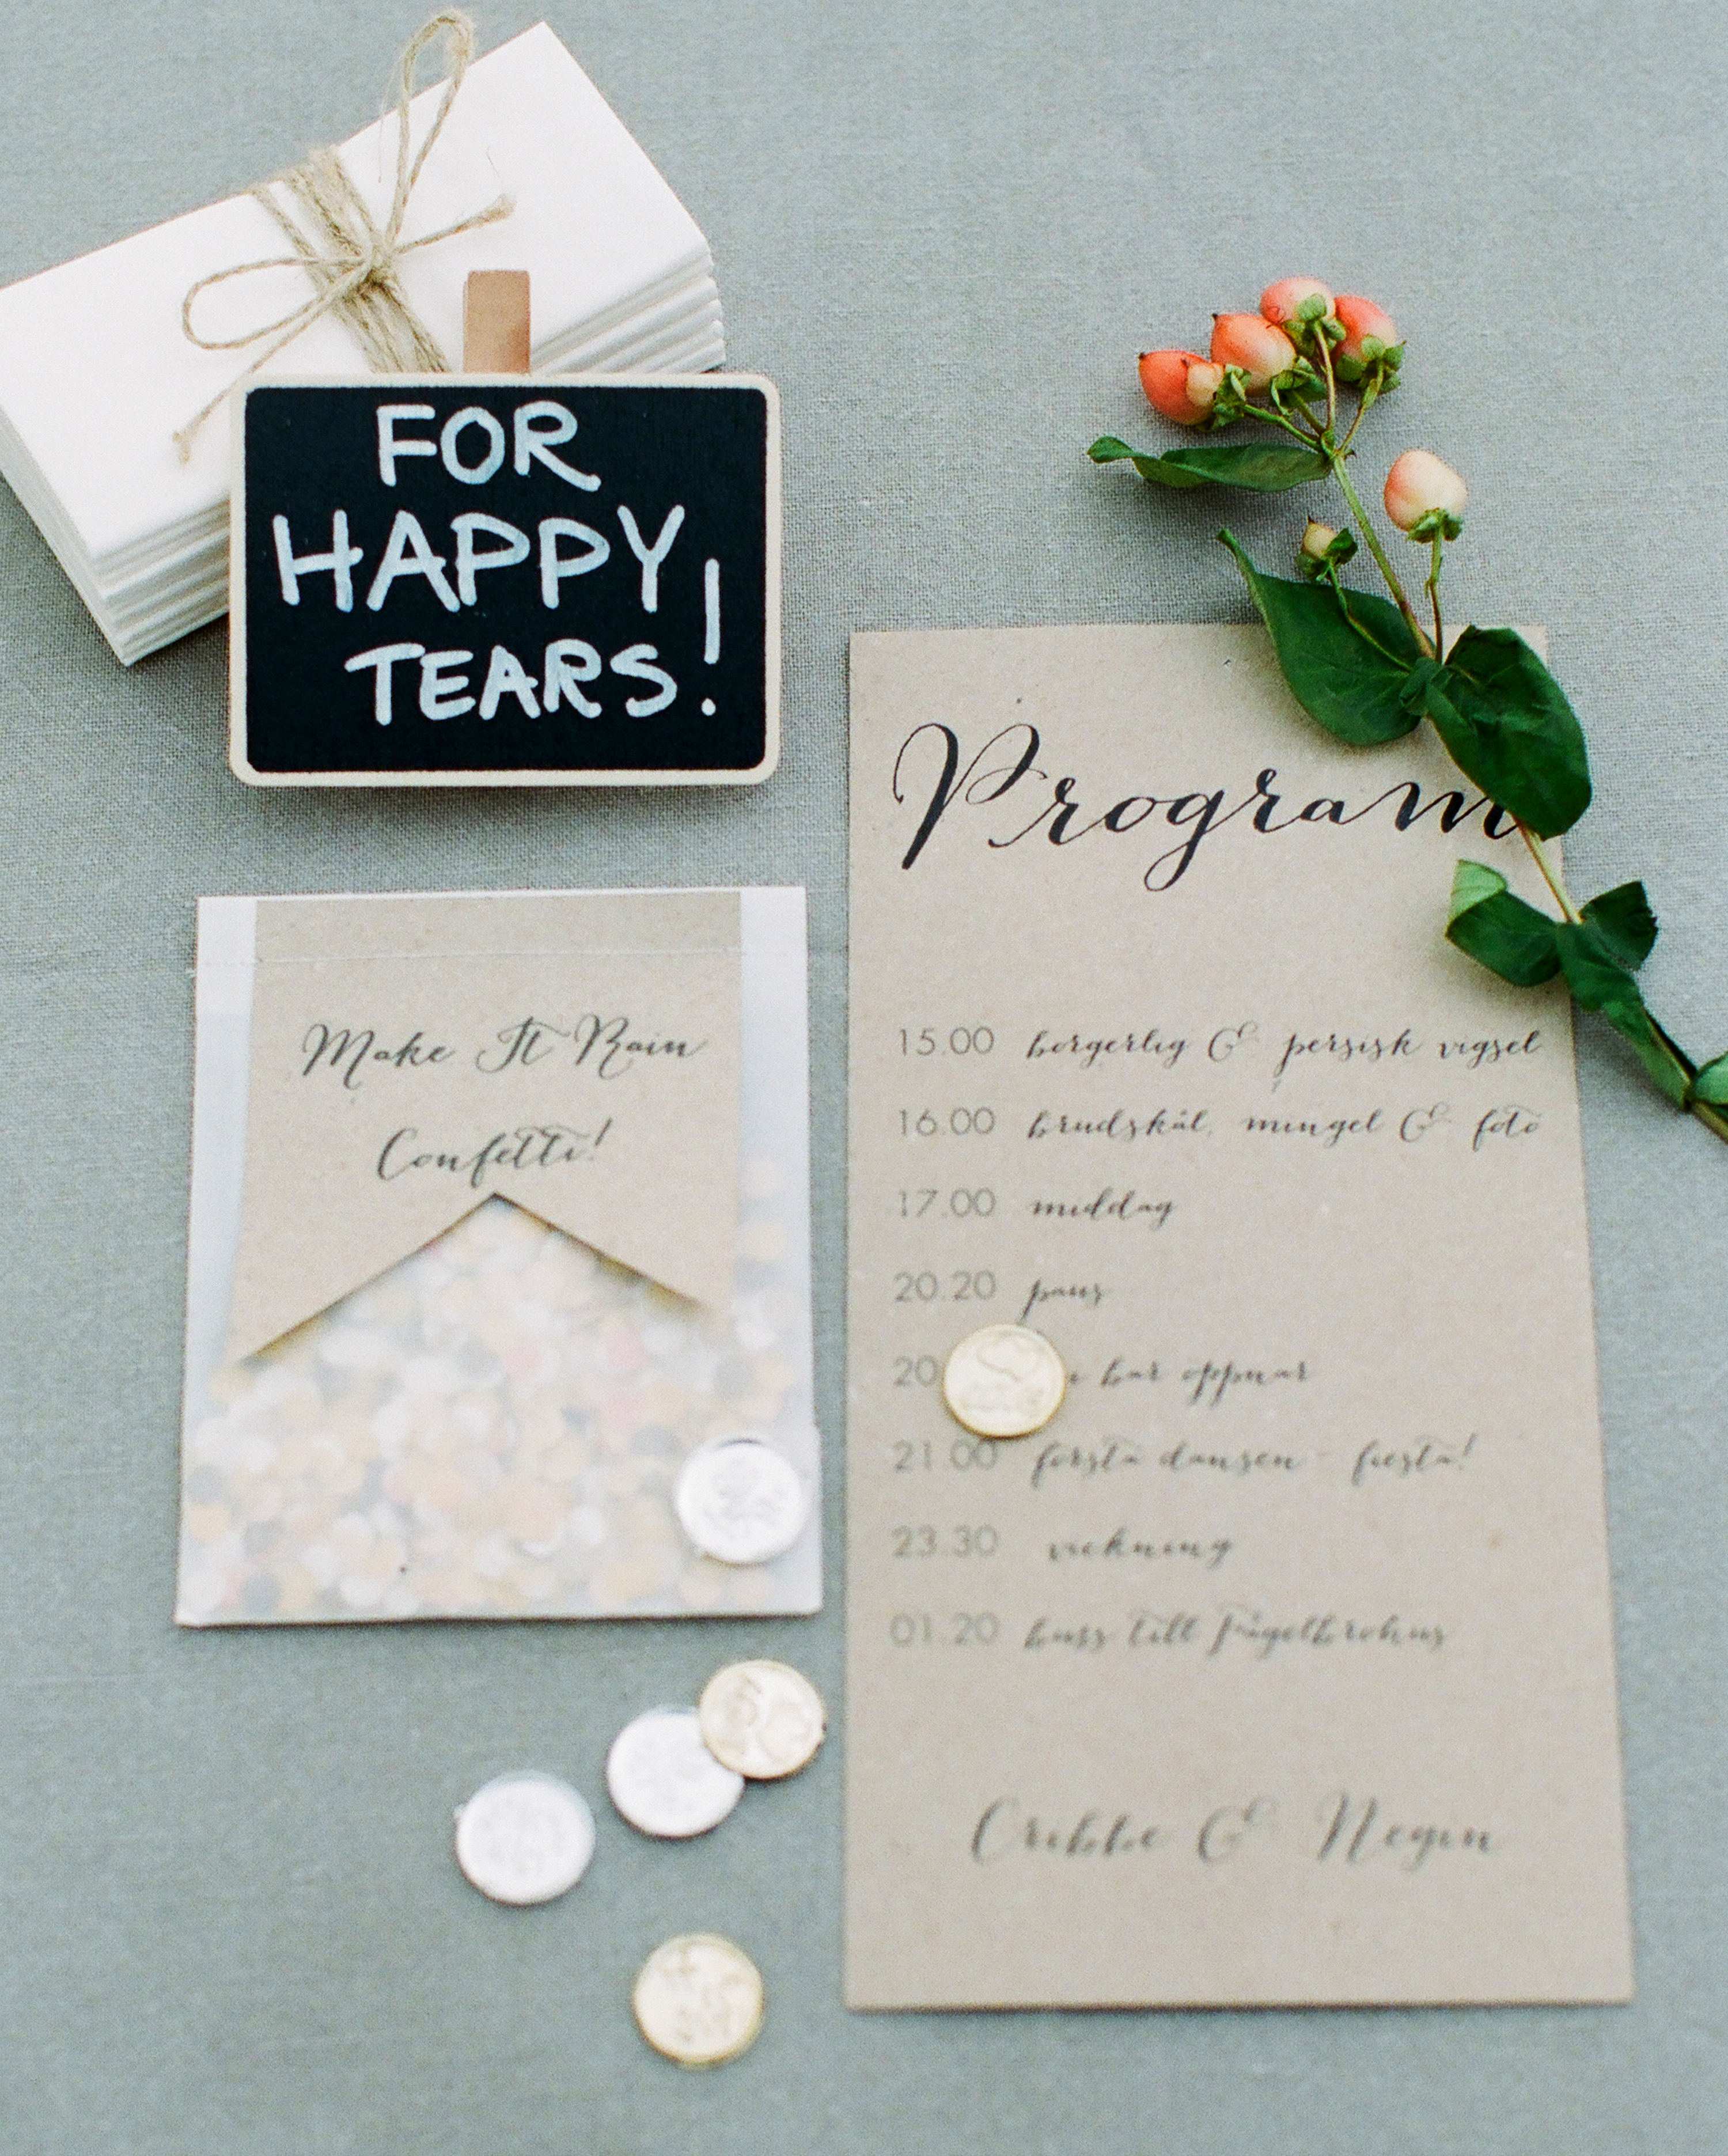 7 Easy Ways to Personalize Your Program | Martha Stewart